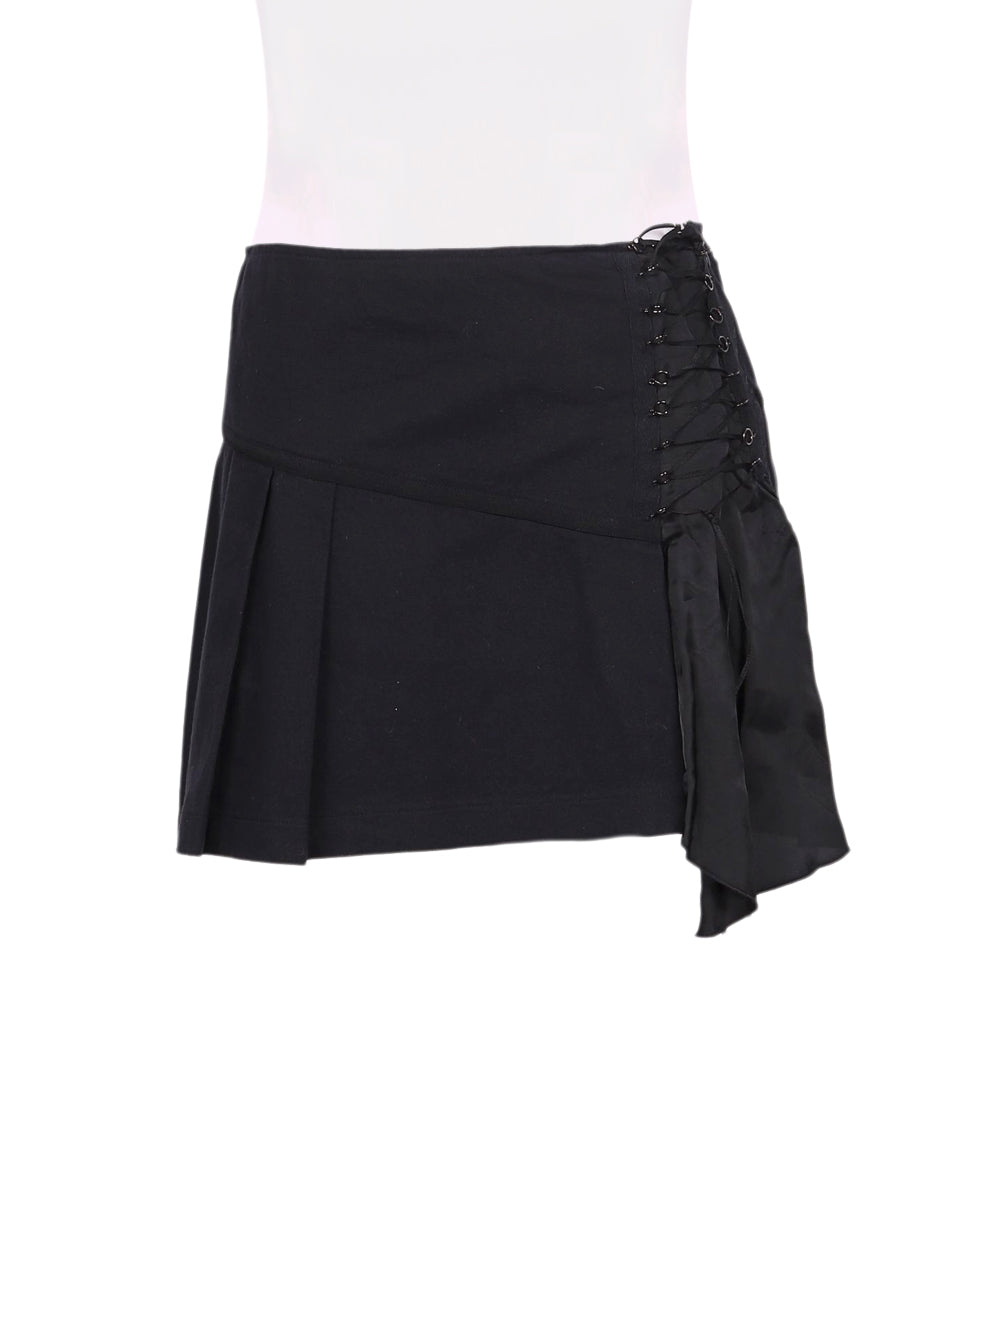 Front photo of Preloved Liu Jo Black Woman's skirt - size 10/M